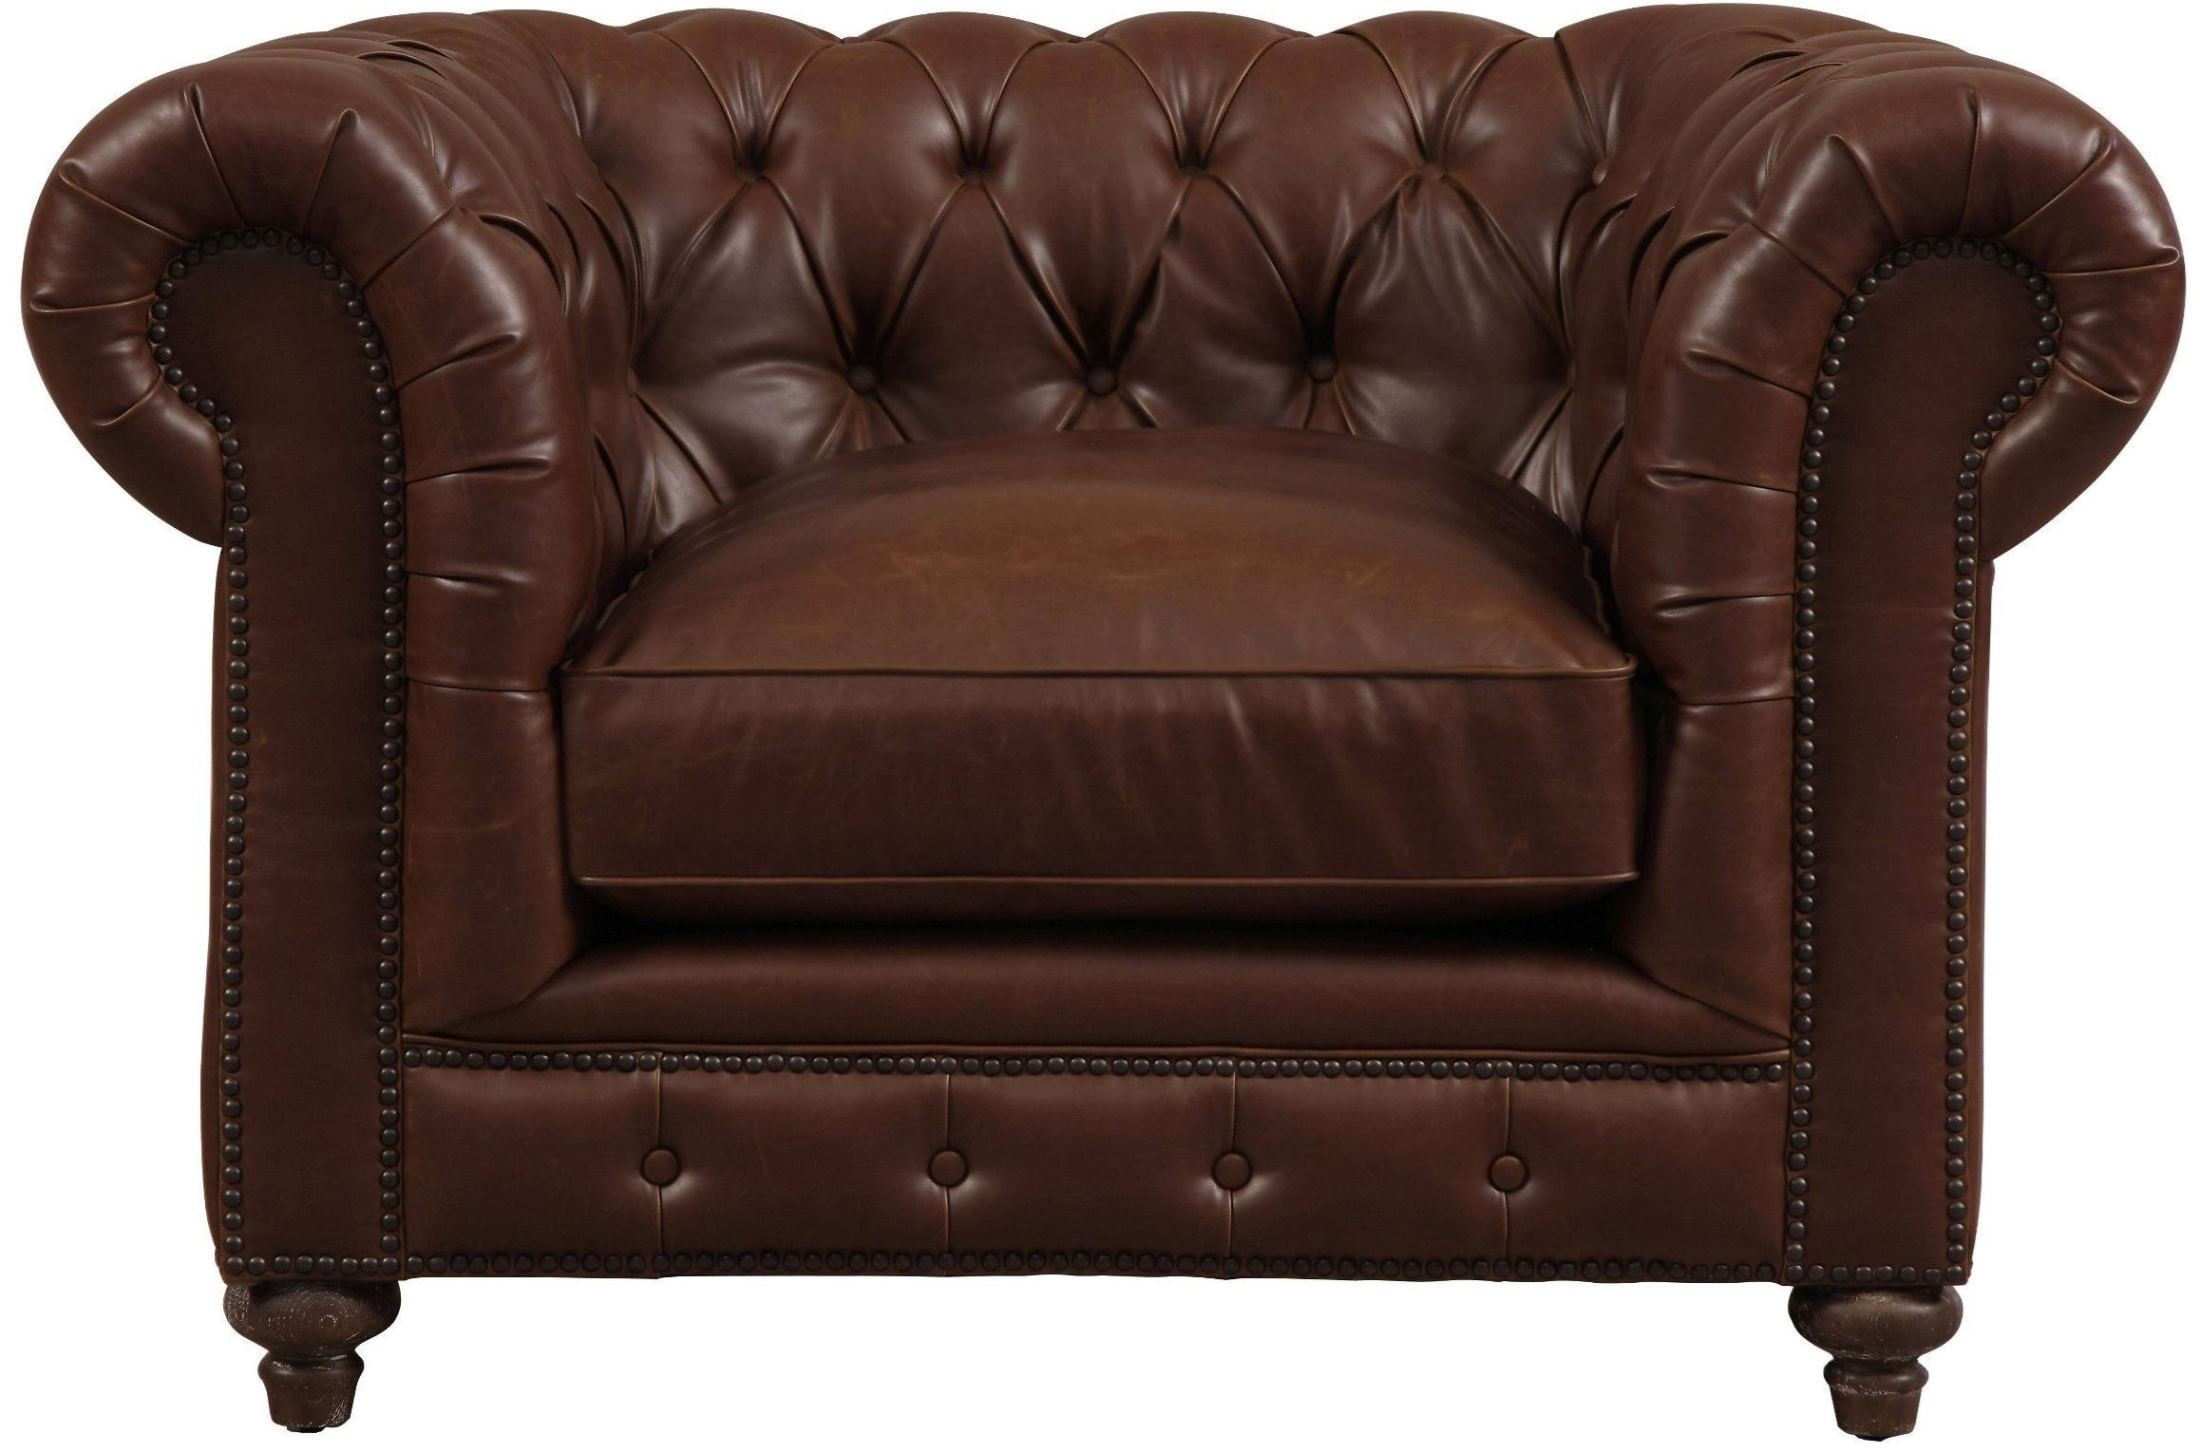 Leather Club Chair Durango Antique Brown Leather Club Chair From Tov